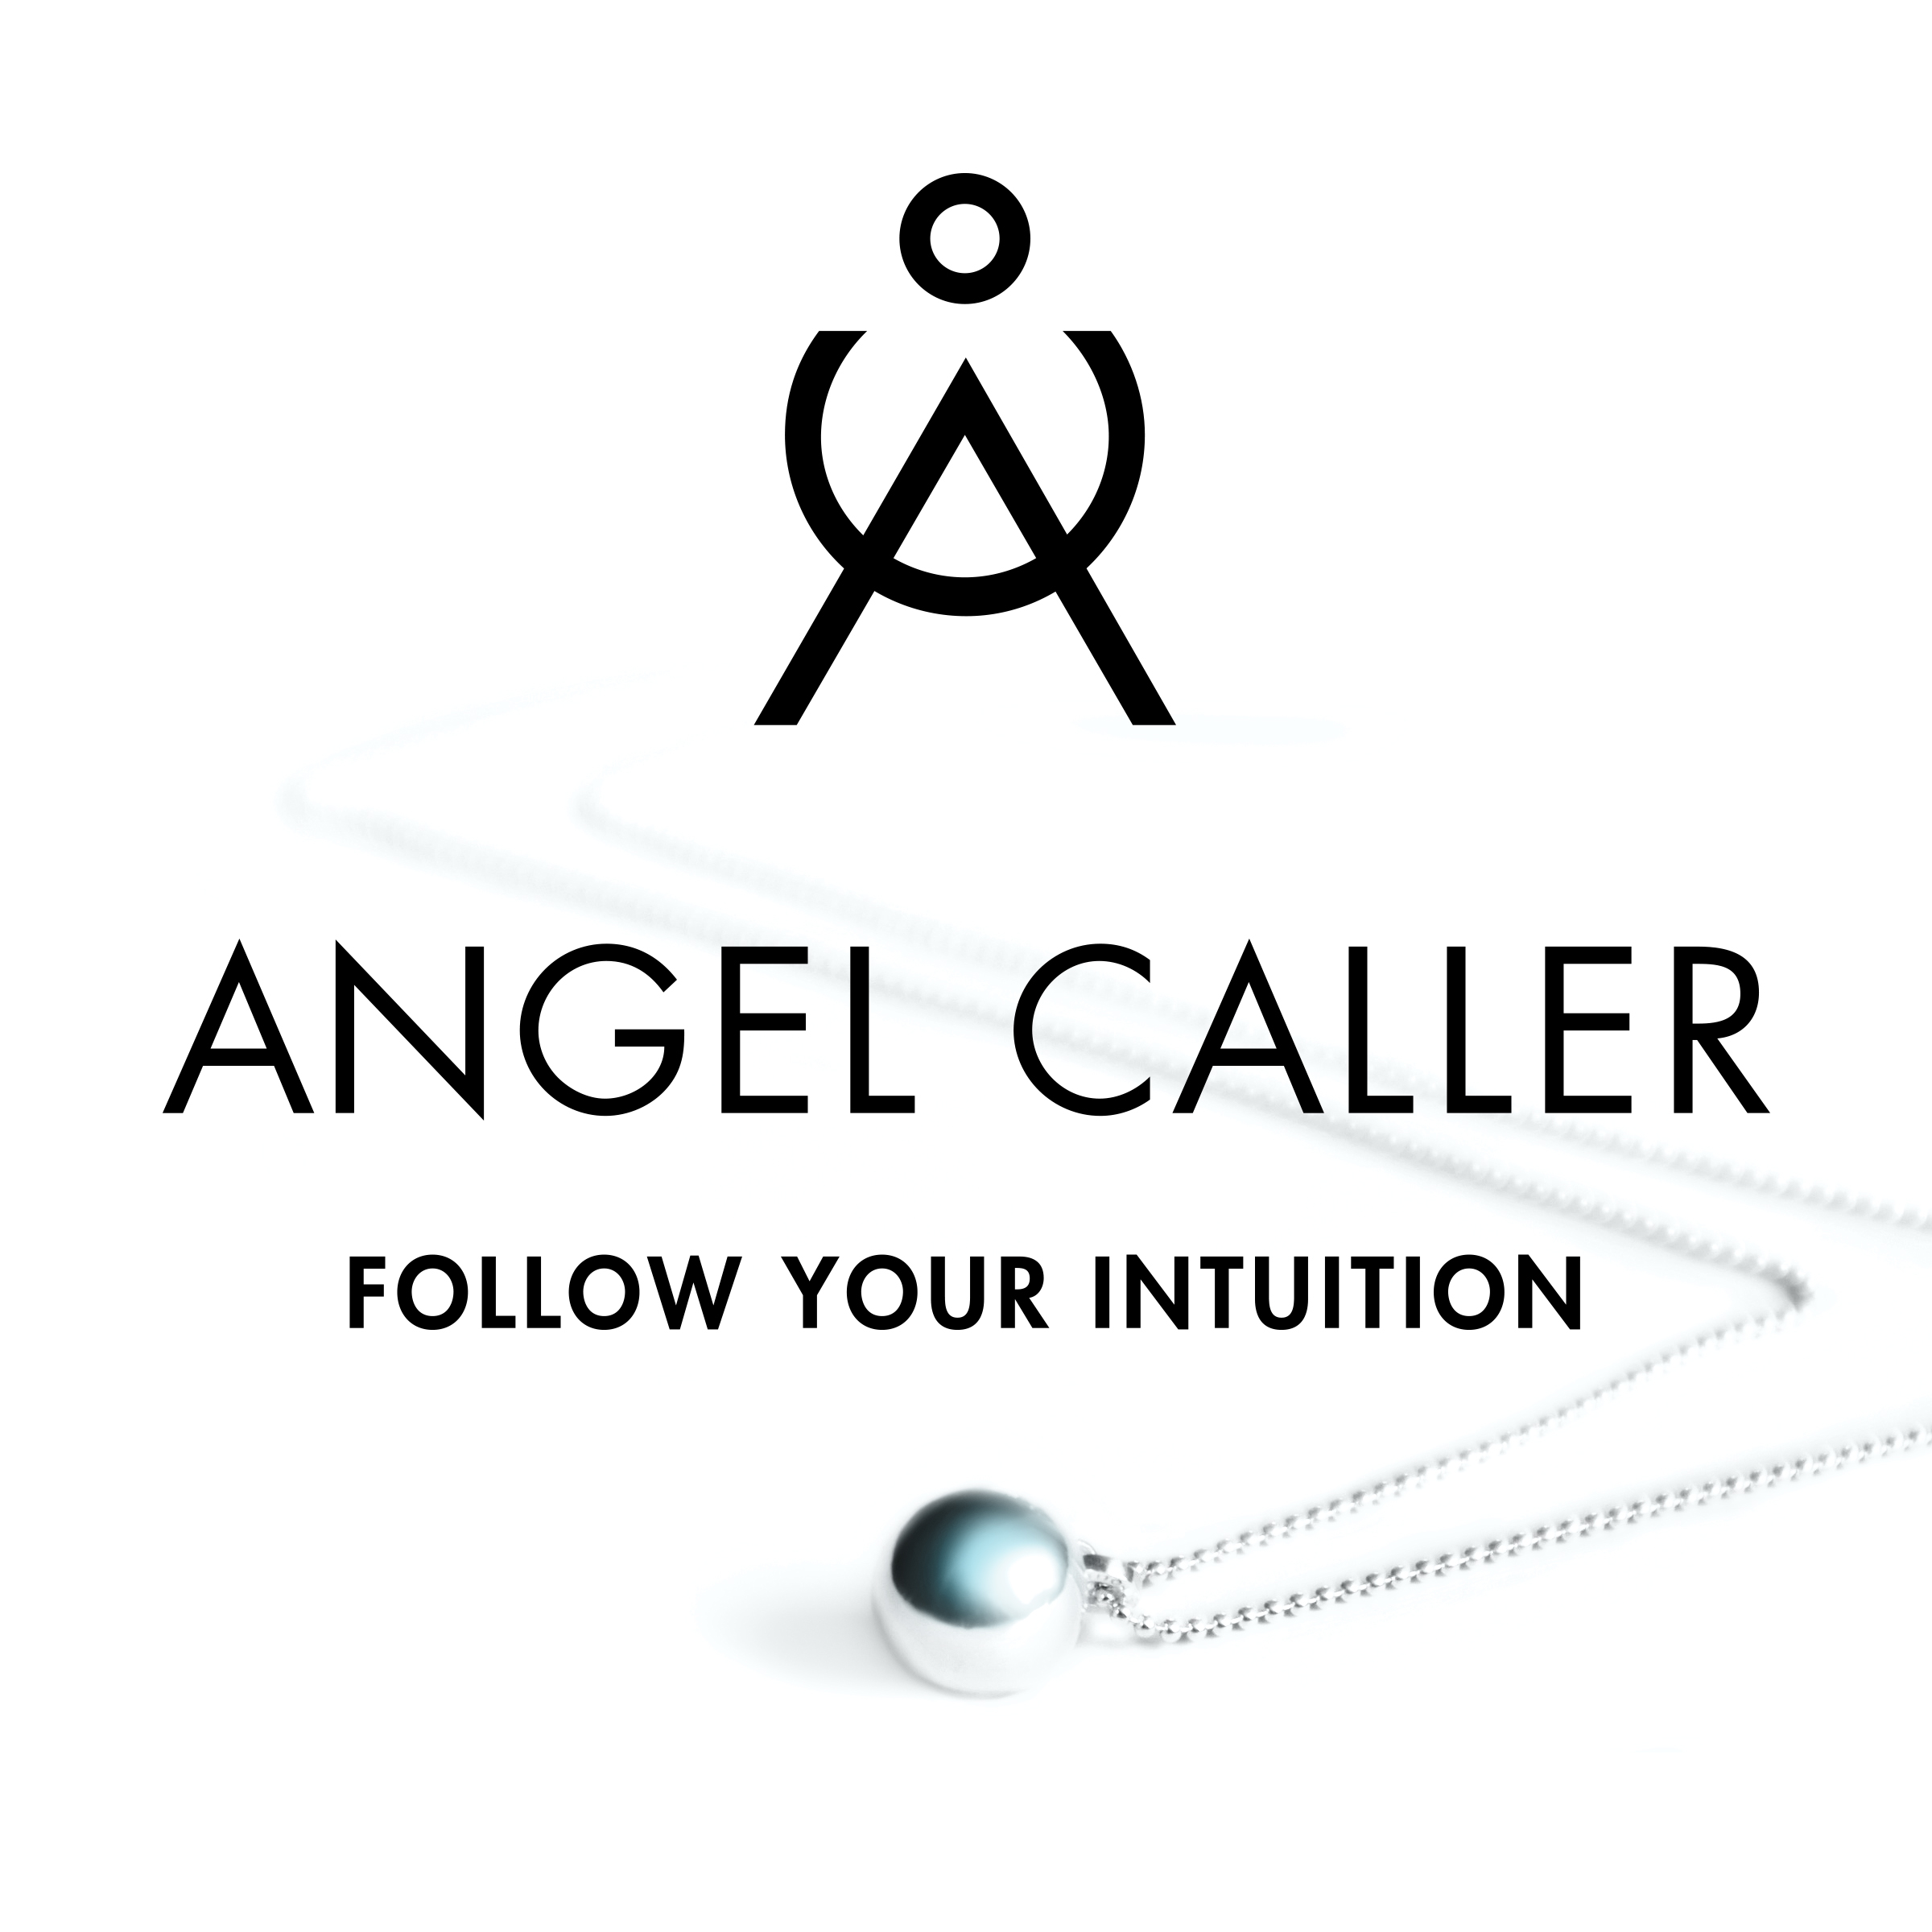 Silver Angel Caller Made In Italy